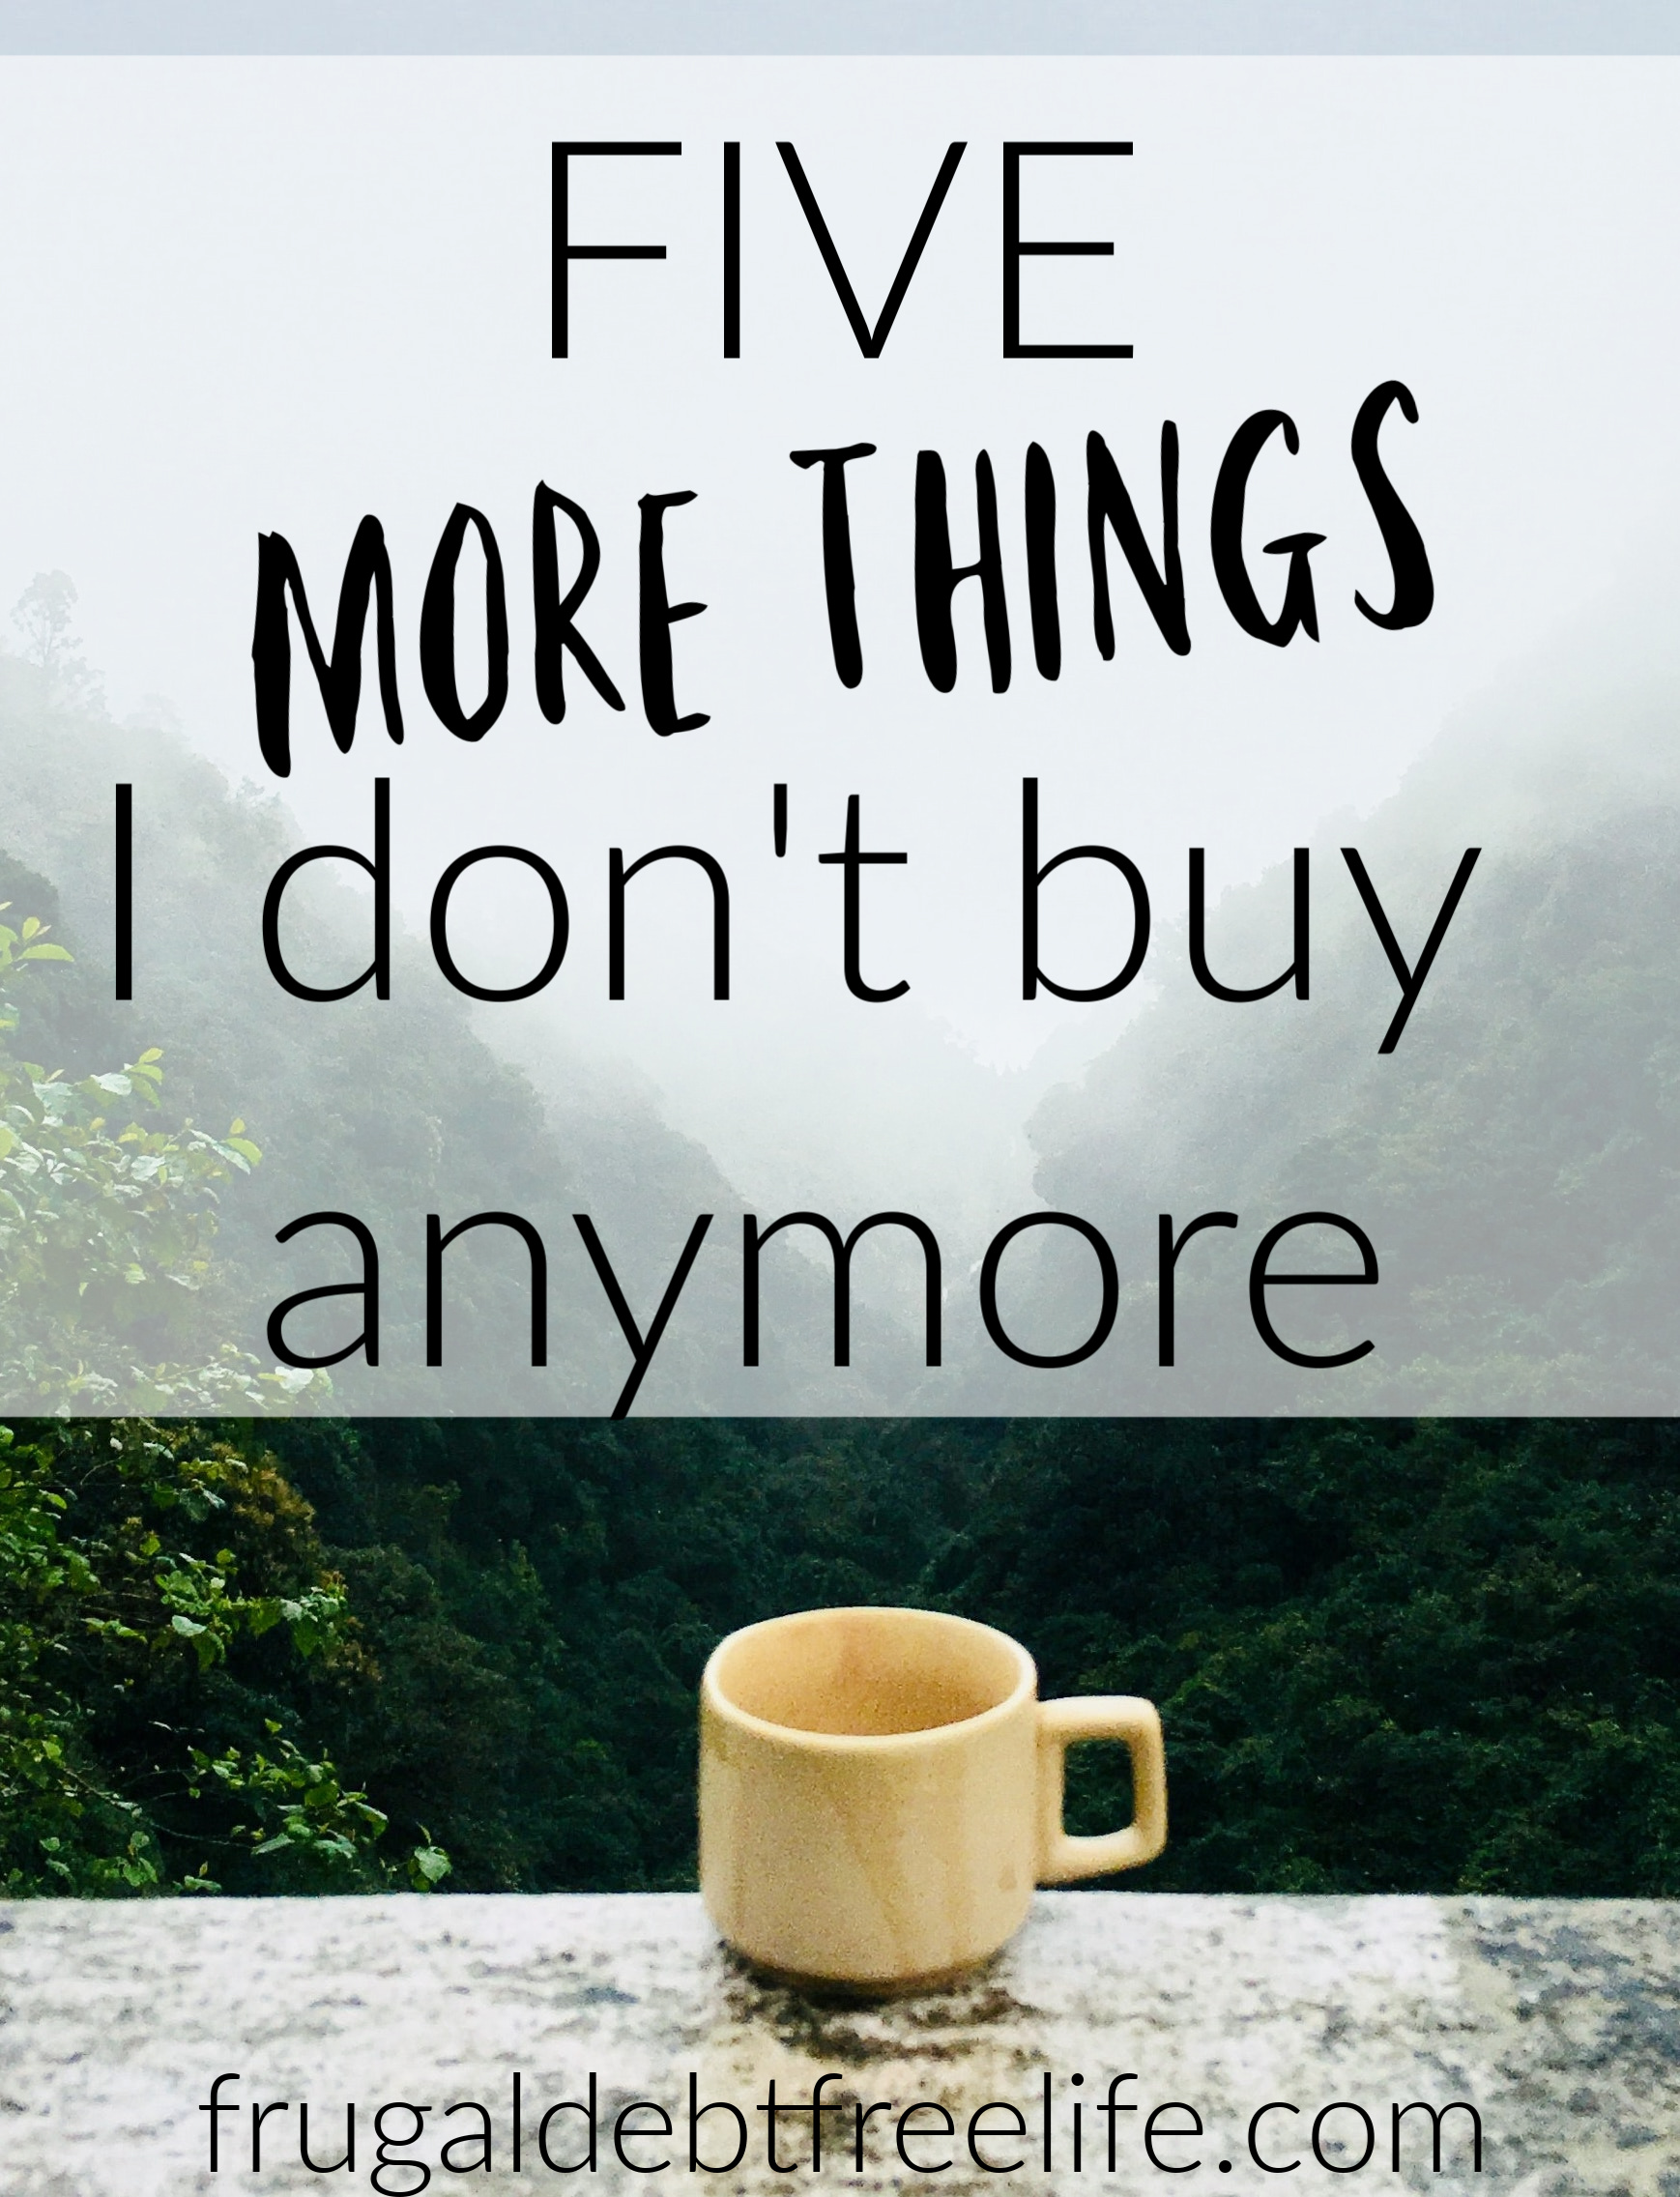 5 MORE things I don't buy! Our Frugal Debt Free Life.jpg